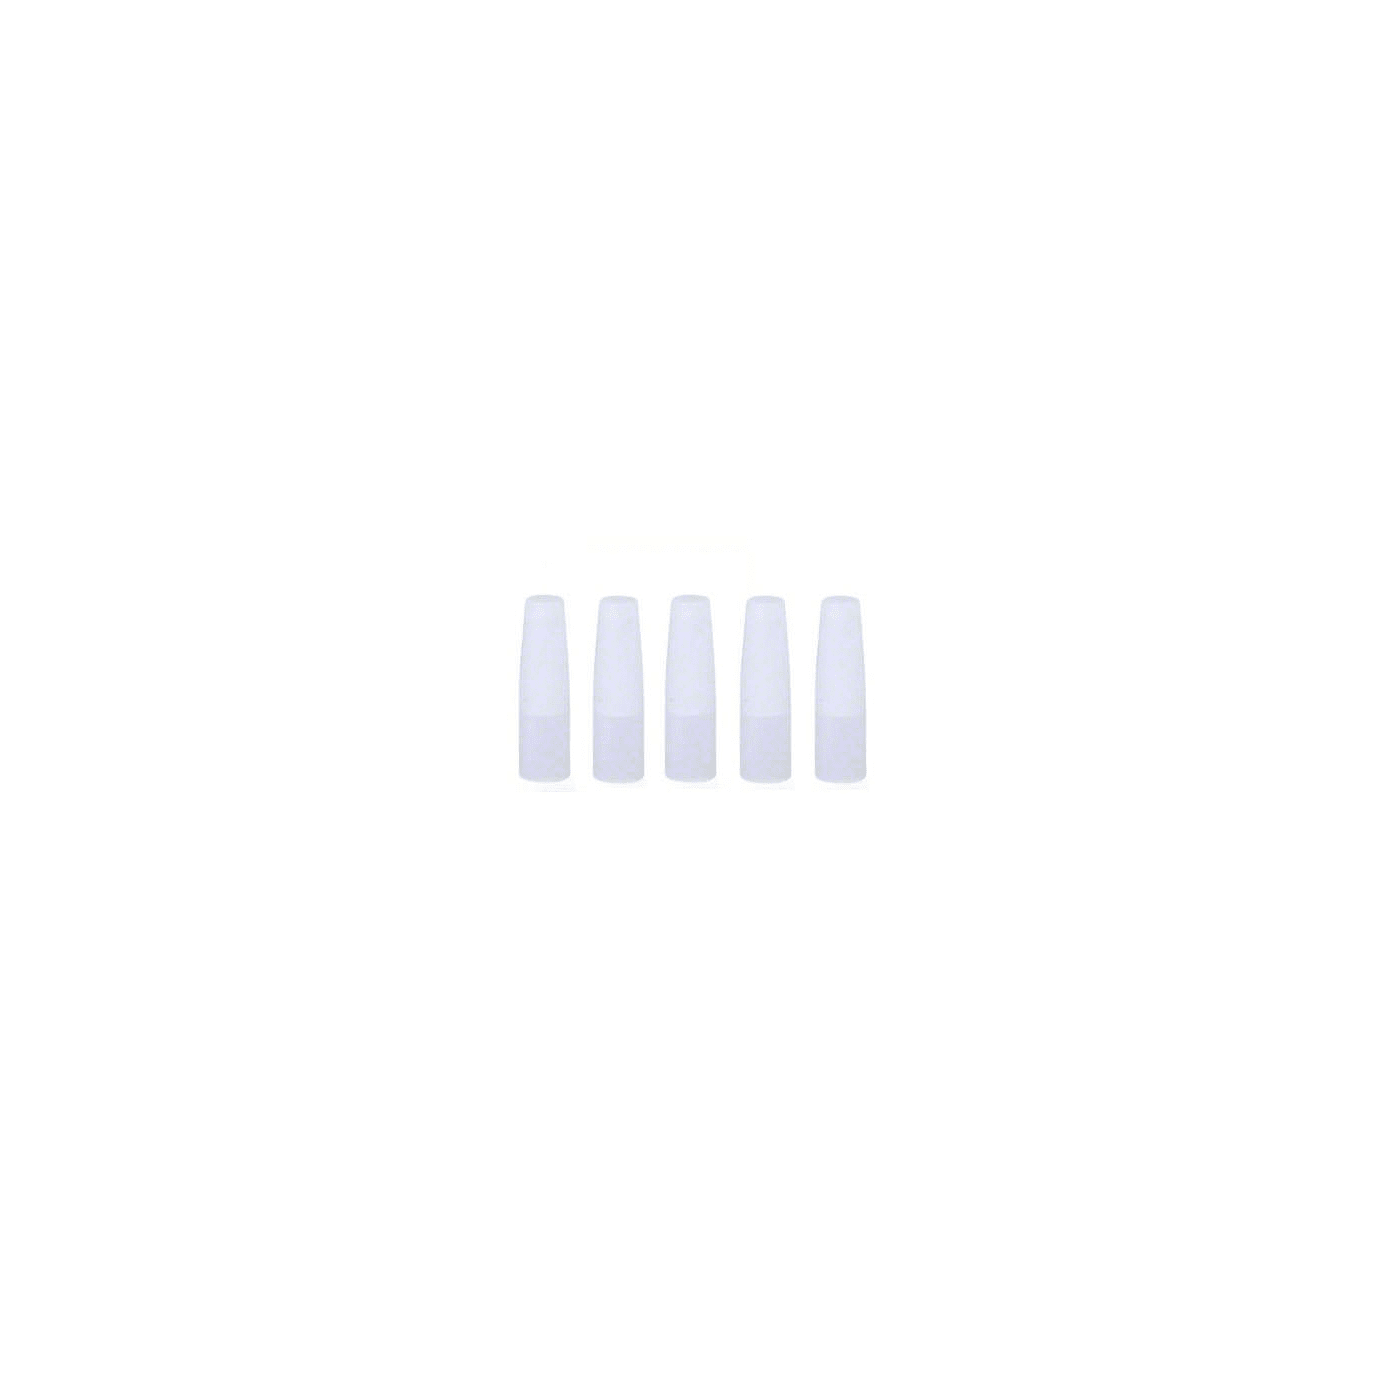 Disposable Drip Tip Cover 5 Pack - White